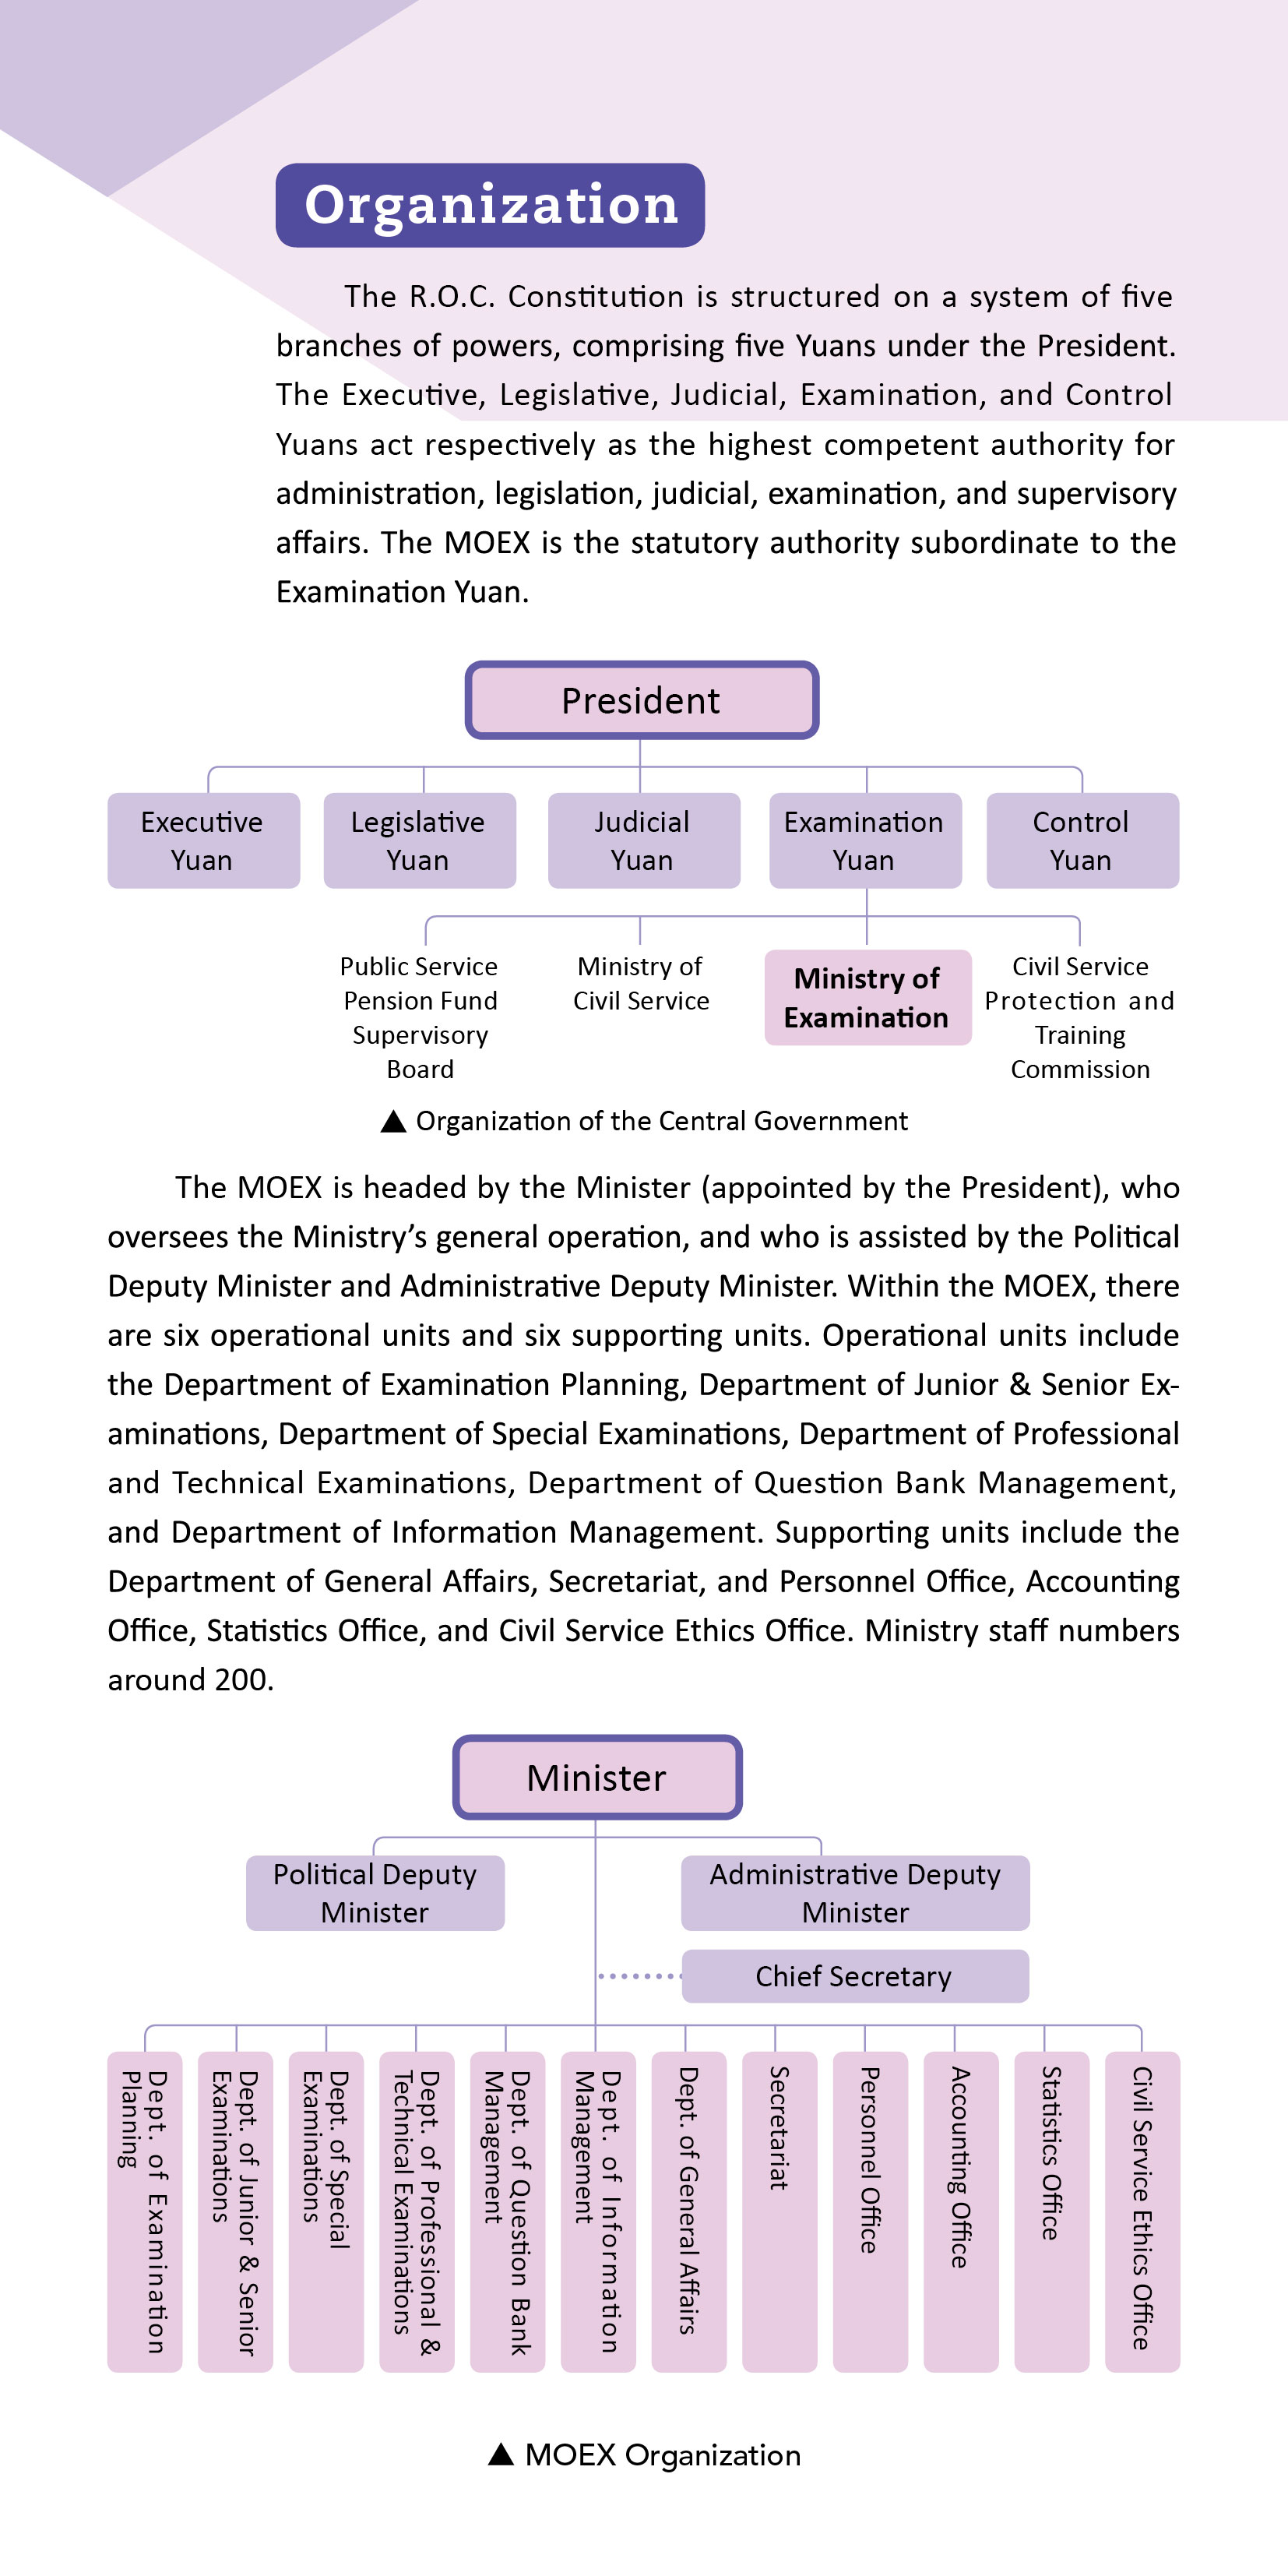 The MOEX is headed by the Minister, who is assisted by the Political Deputy Minster, Administrative Deputy Minister, and Chief Secretary. Operational units include Department of Examination Planning, Department of Junior & Senior Examinations, Department of Special Examinations, Department of Professional and Technical Examinations, Department of Question Bank Management, Department of Information Management, as well as other staff units.